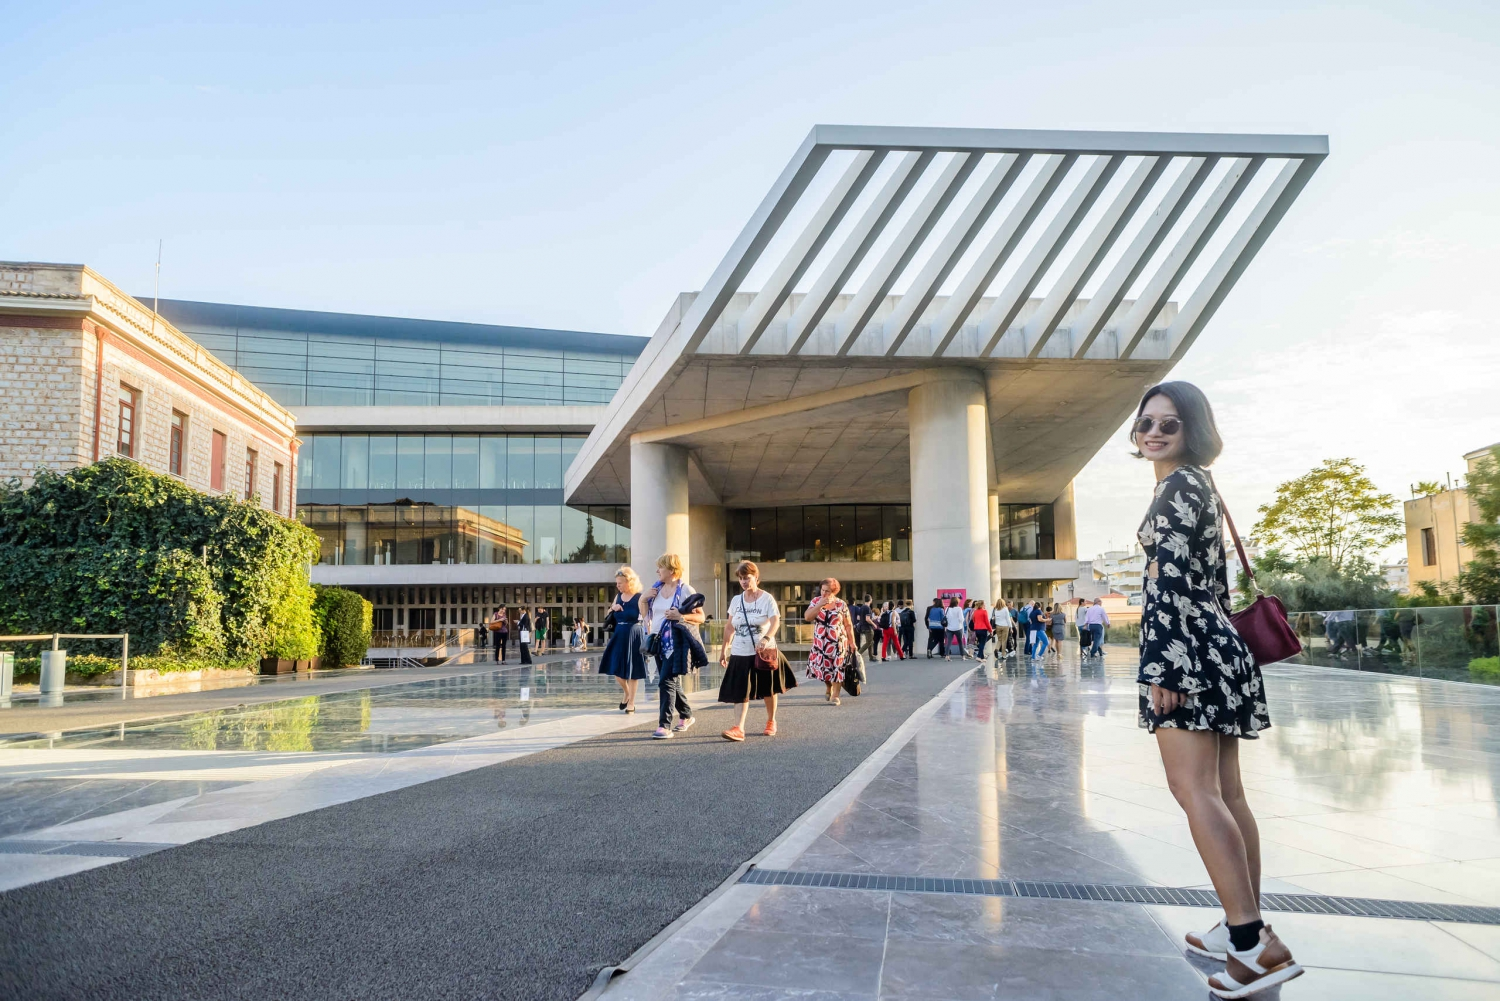 The Acropolis Museum Skip-The-Line Ticket